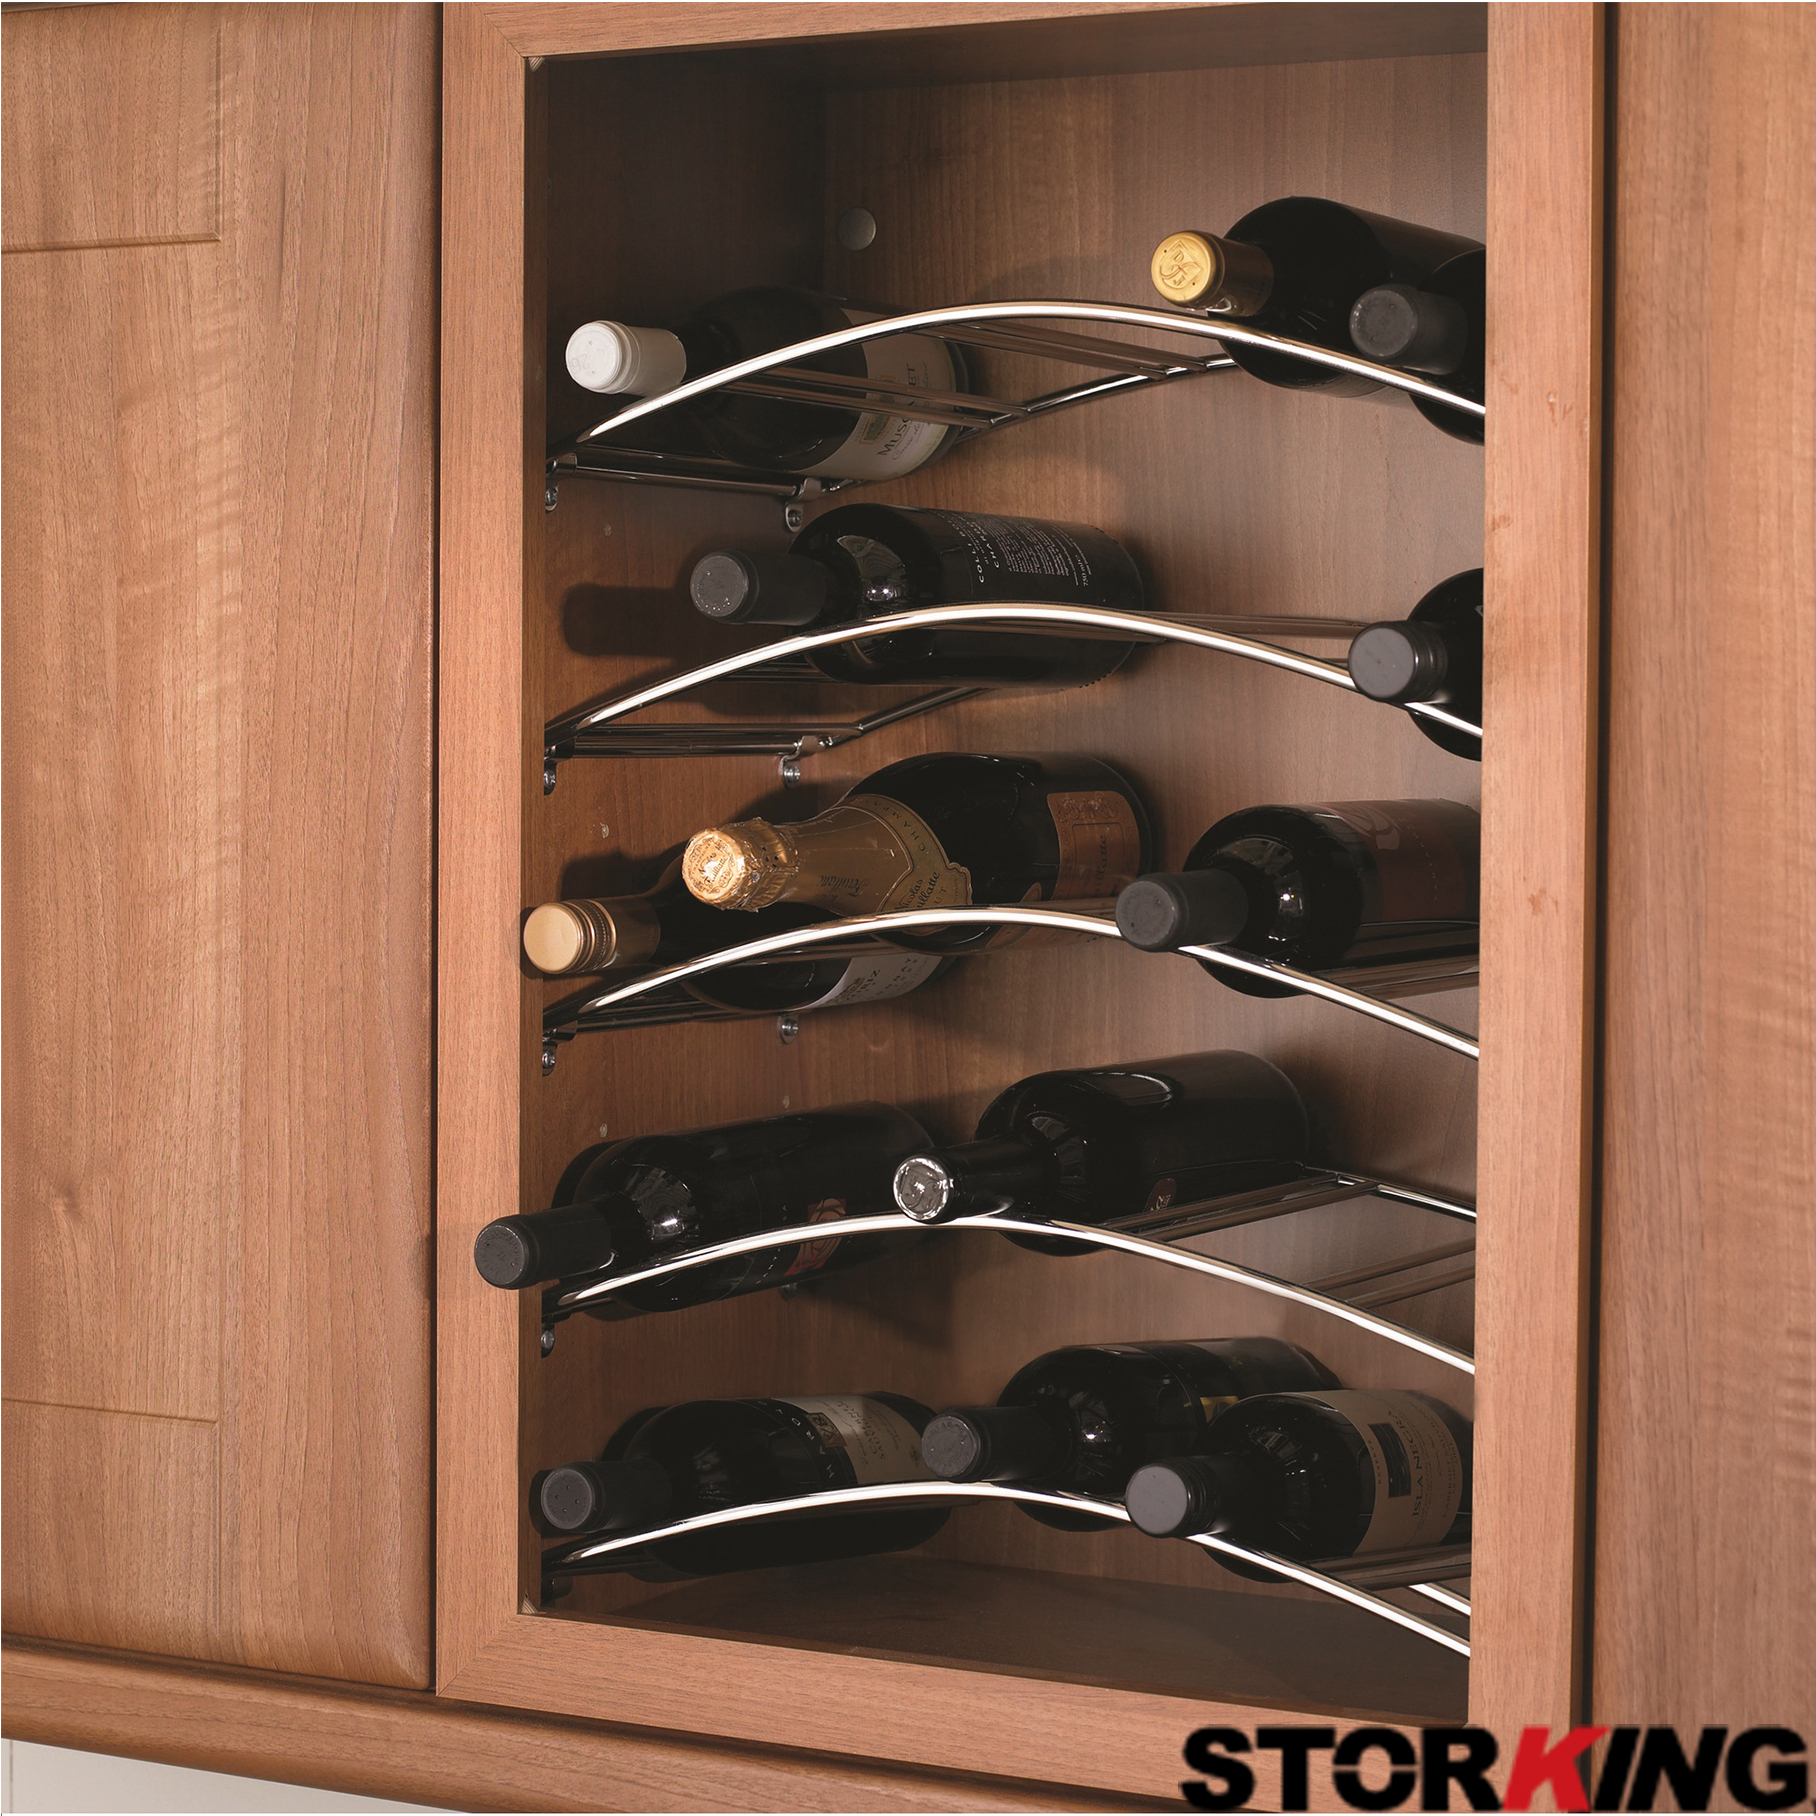 Kitchen Cabinet Red Wine Rack Buy Red Wine Rack Under Cabinet Wine Rack Fancy Wine Racks Product On Alibaba Com